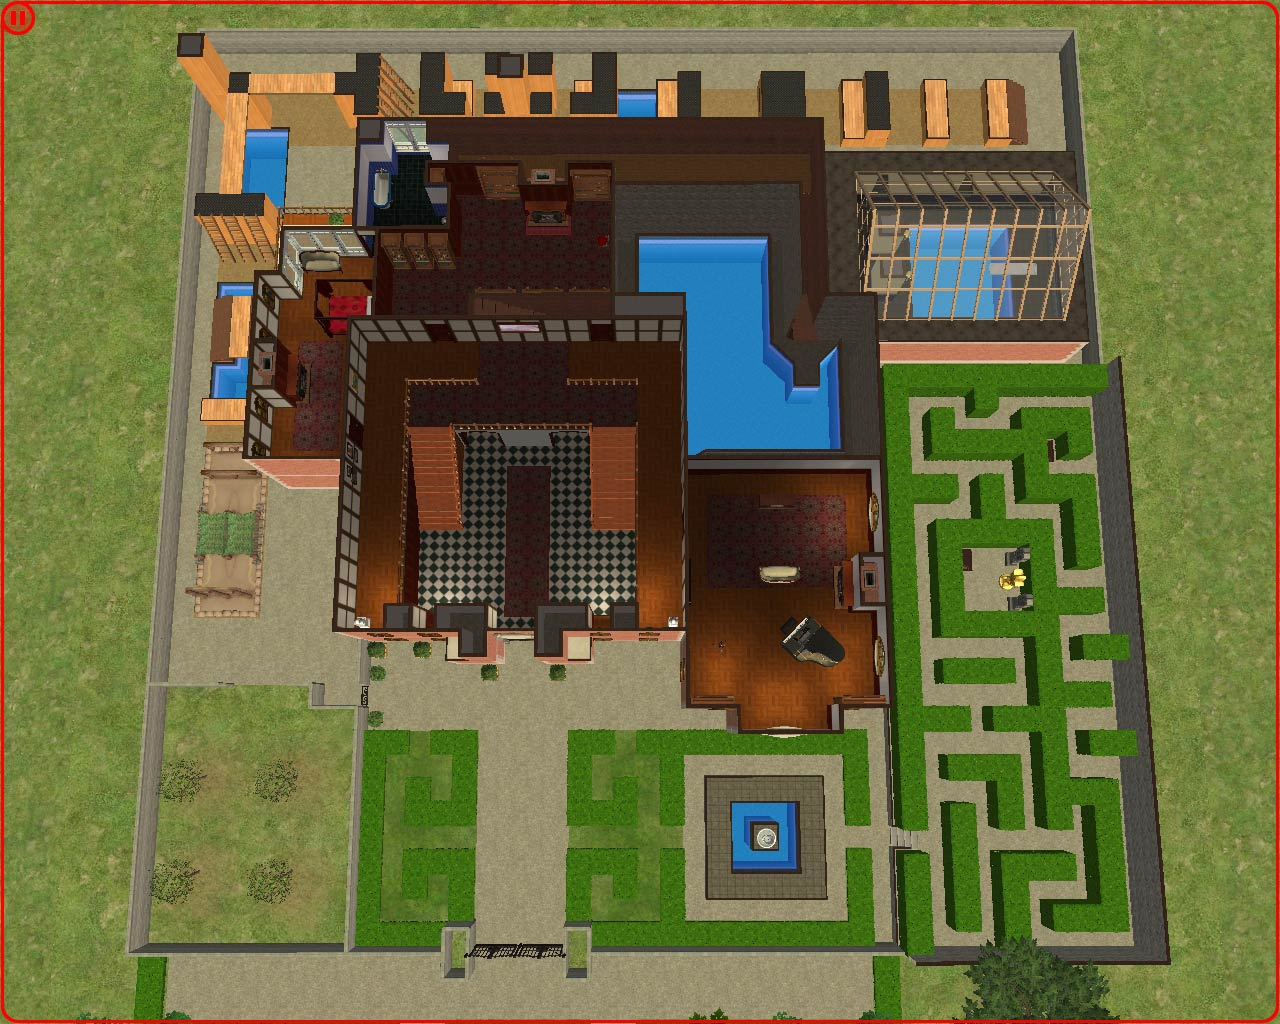 How To Find House With Same Floor Plan Croft Manor Www Tombraiderforums Com